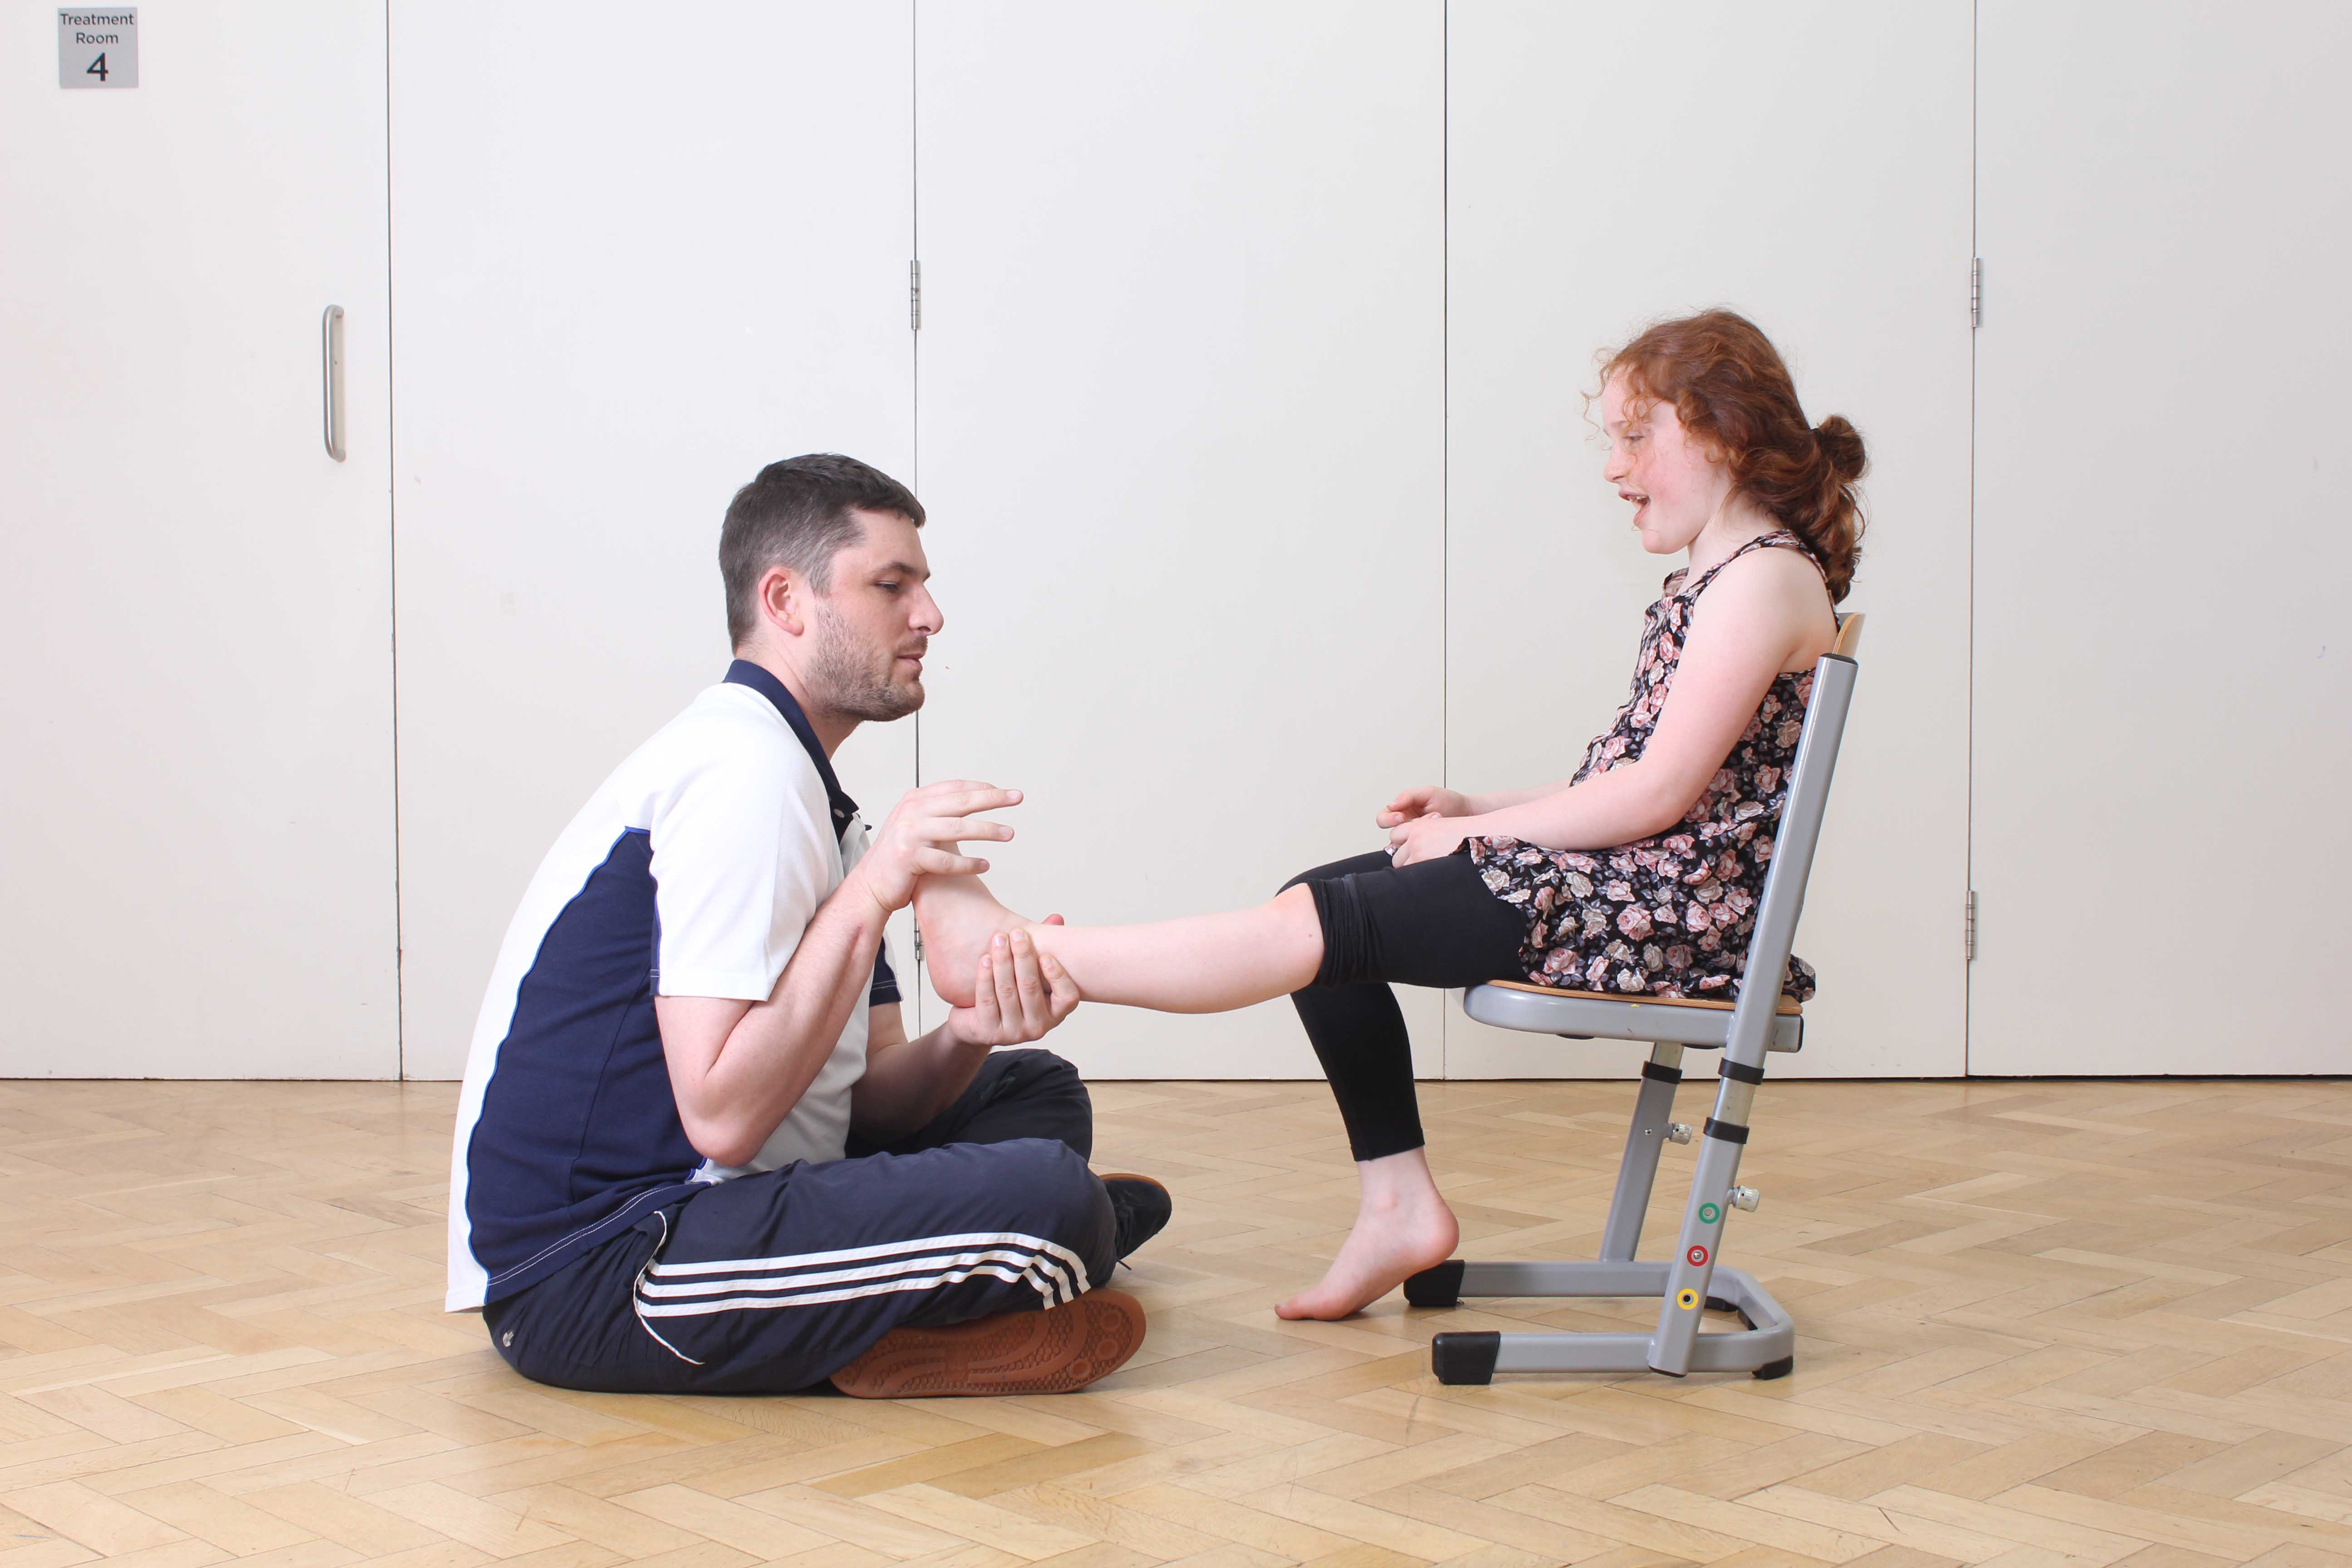 Mobilisations and stretches by a paediatric physiohterapist to reduce heel pain and stiffness